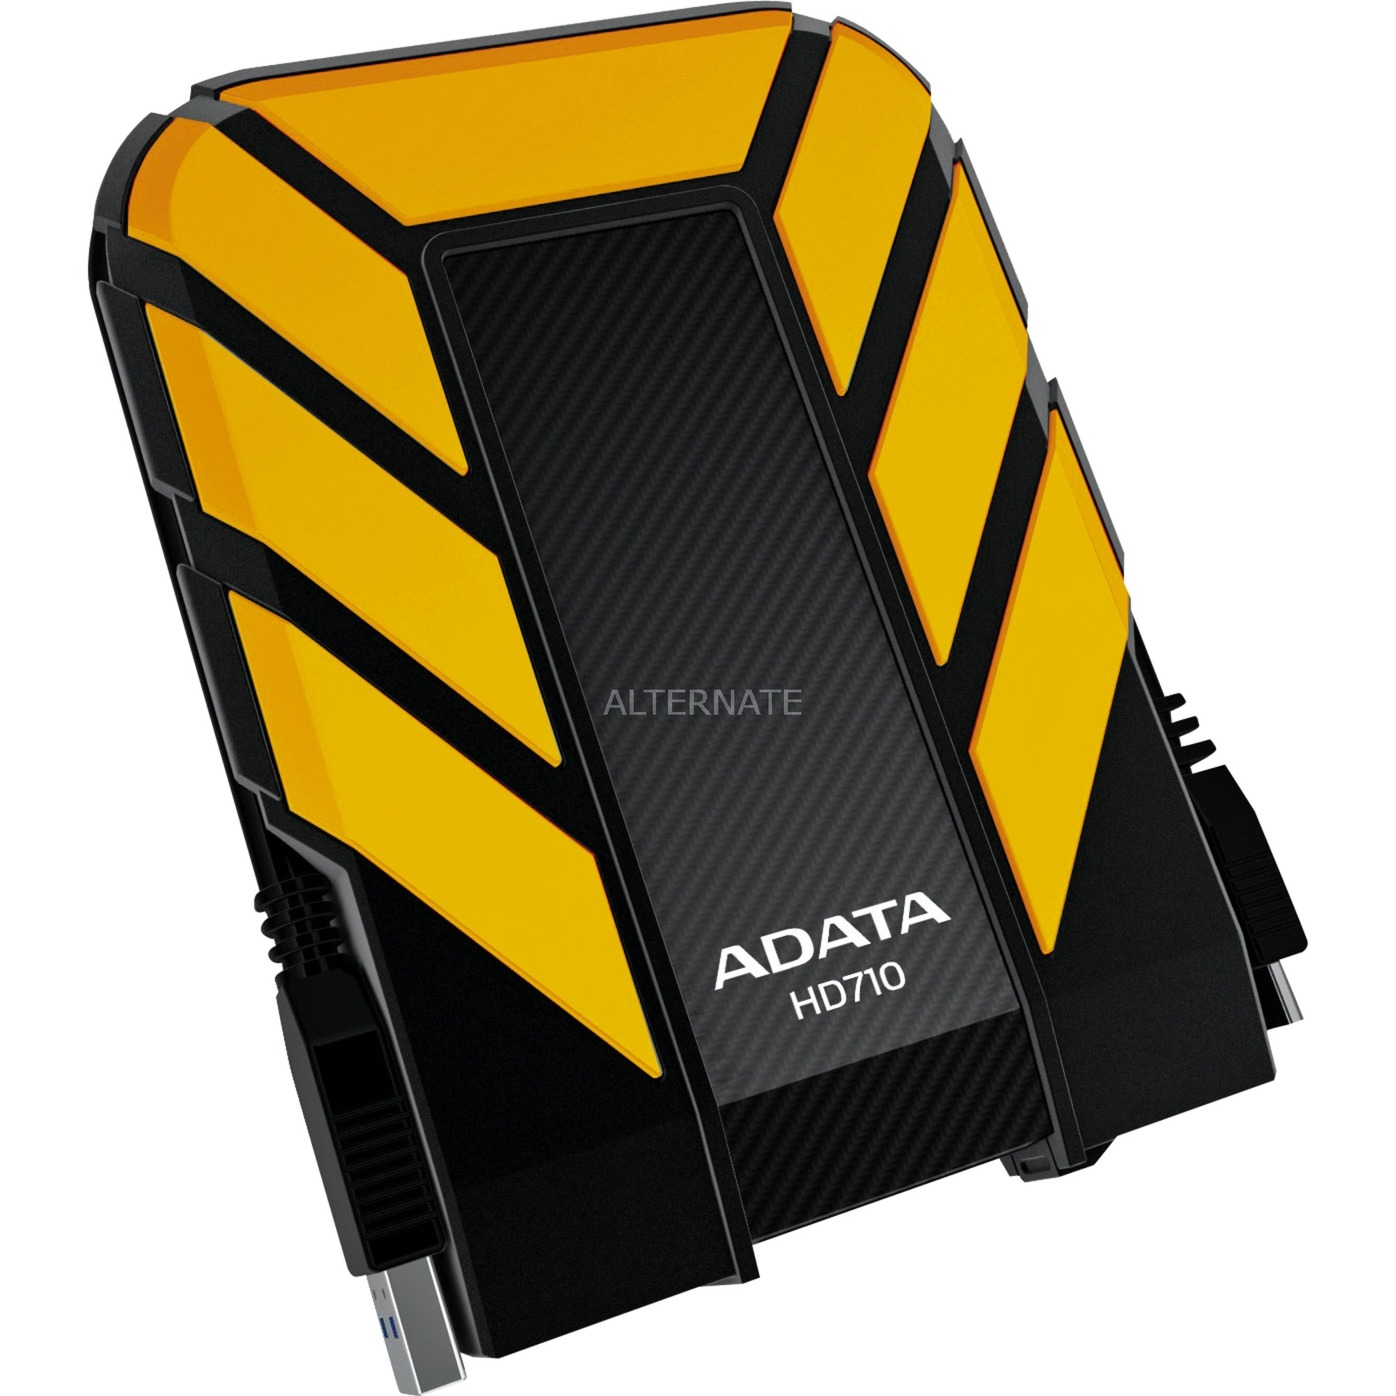 1TB DashDrive Durable HD710 disco duro externo 1000 GB Amarillo, Unidad de disco duro